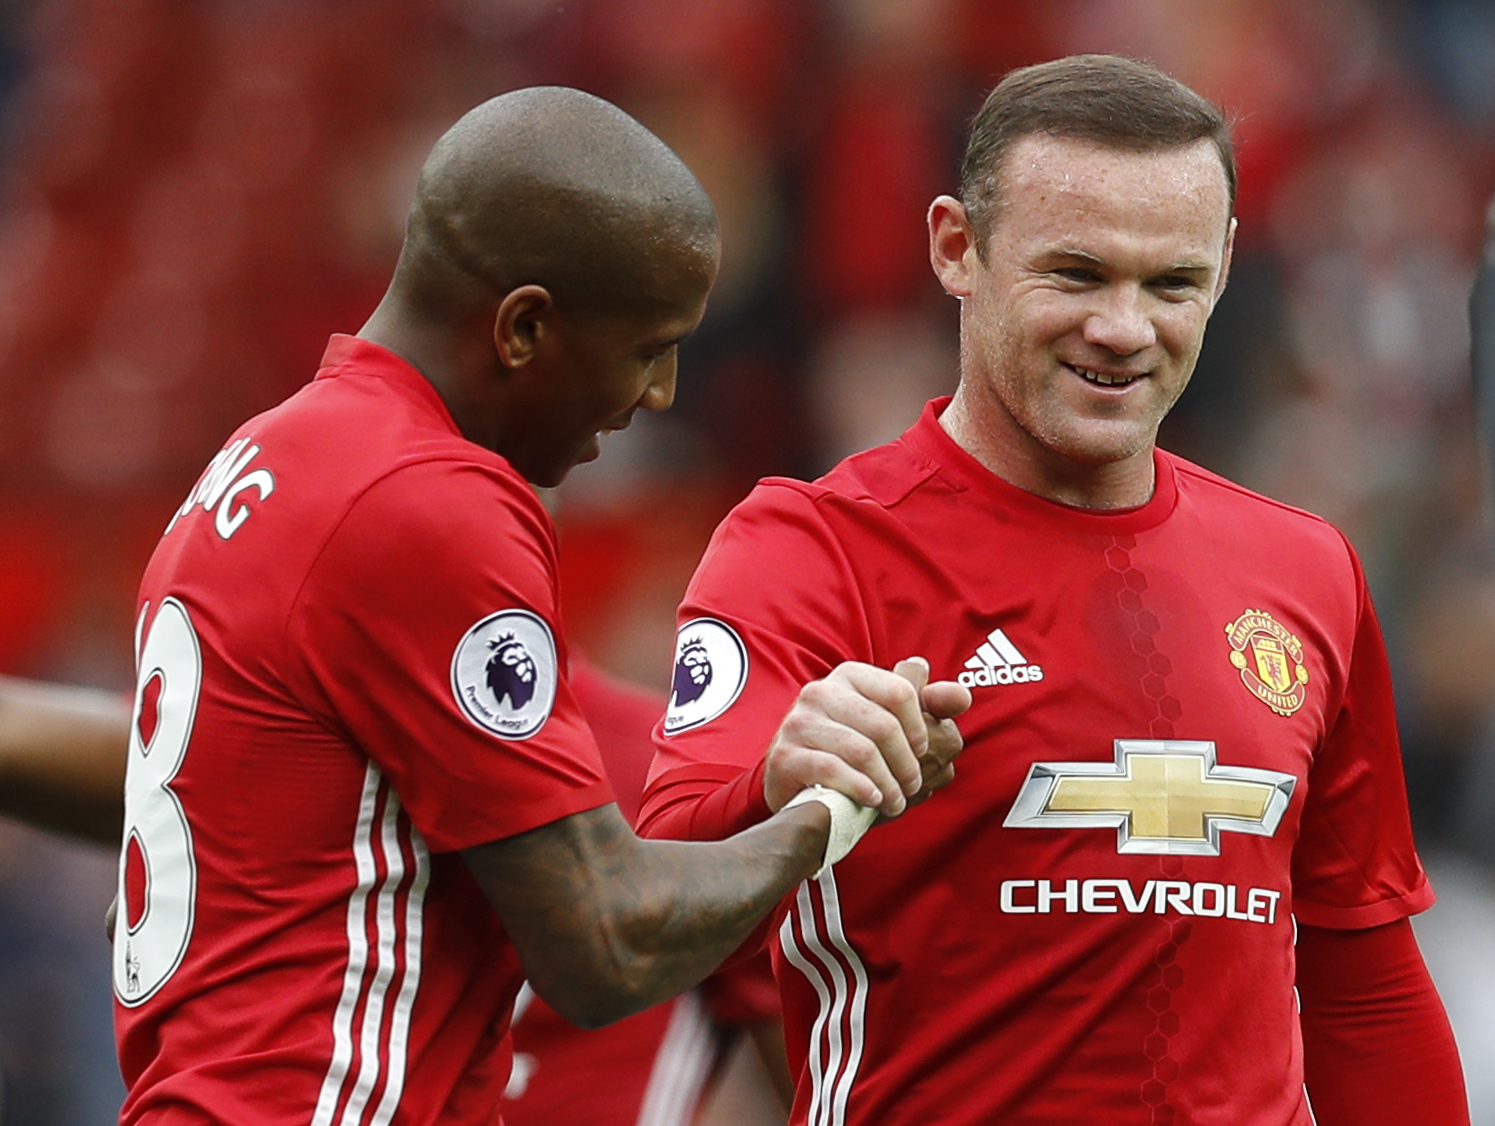 Ashley Young and Wayne Rooney